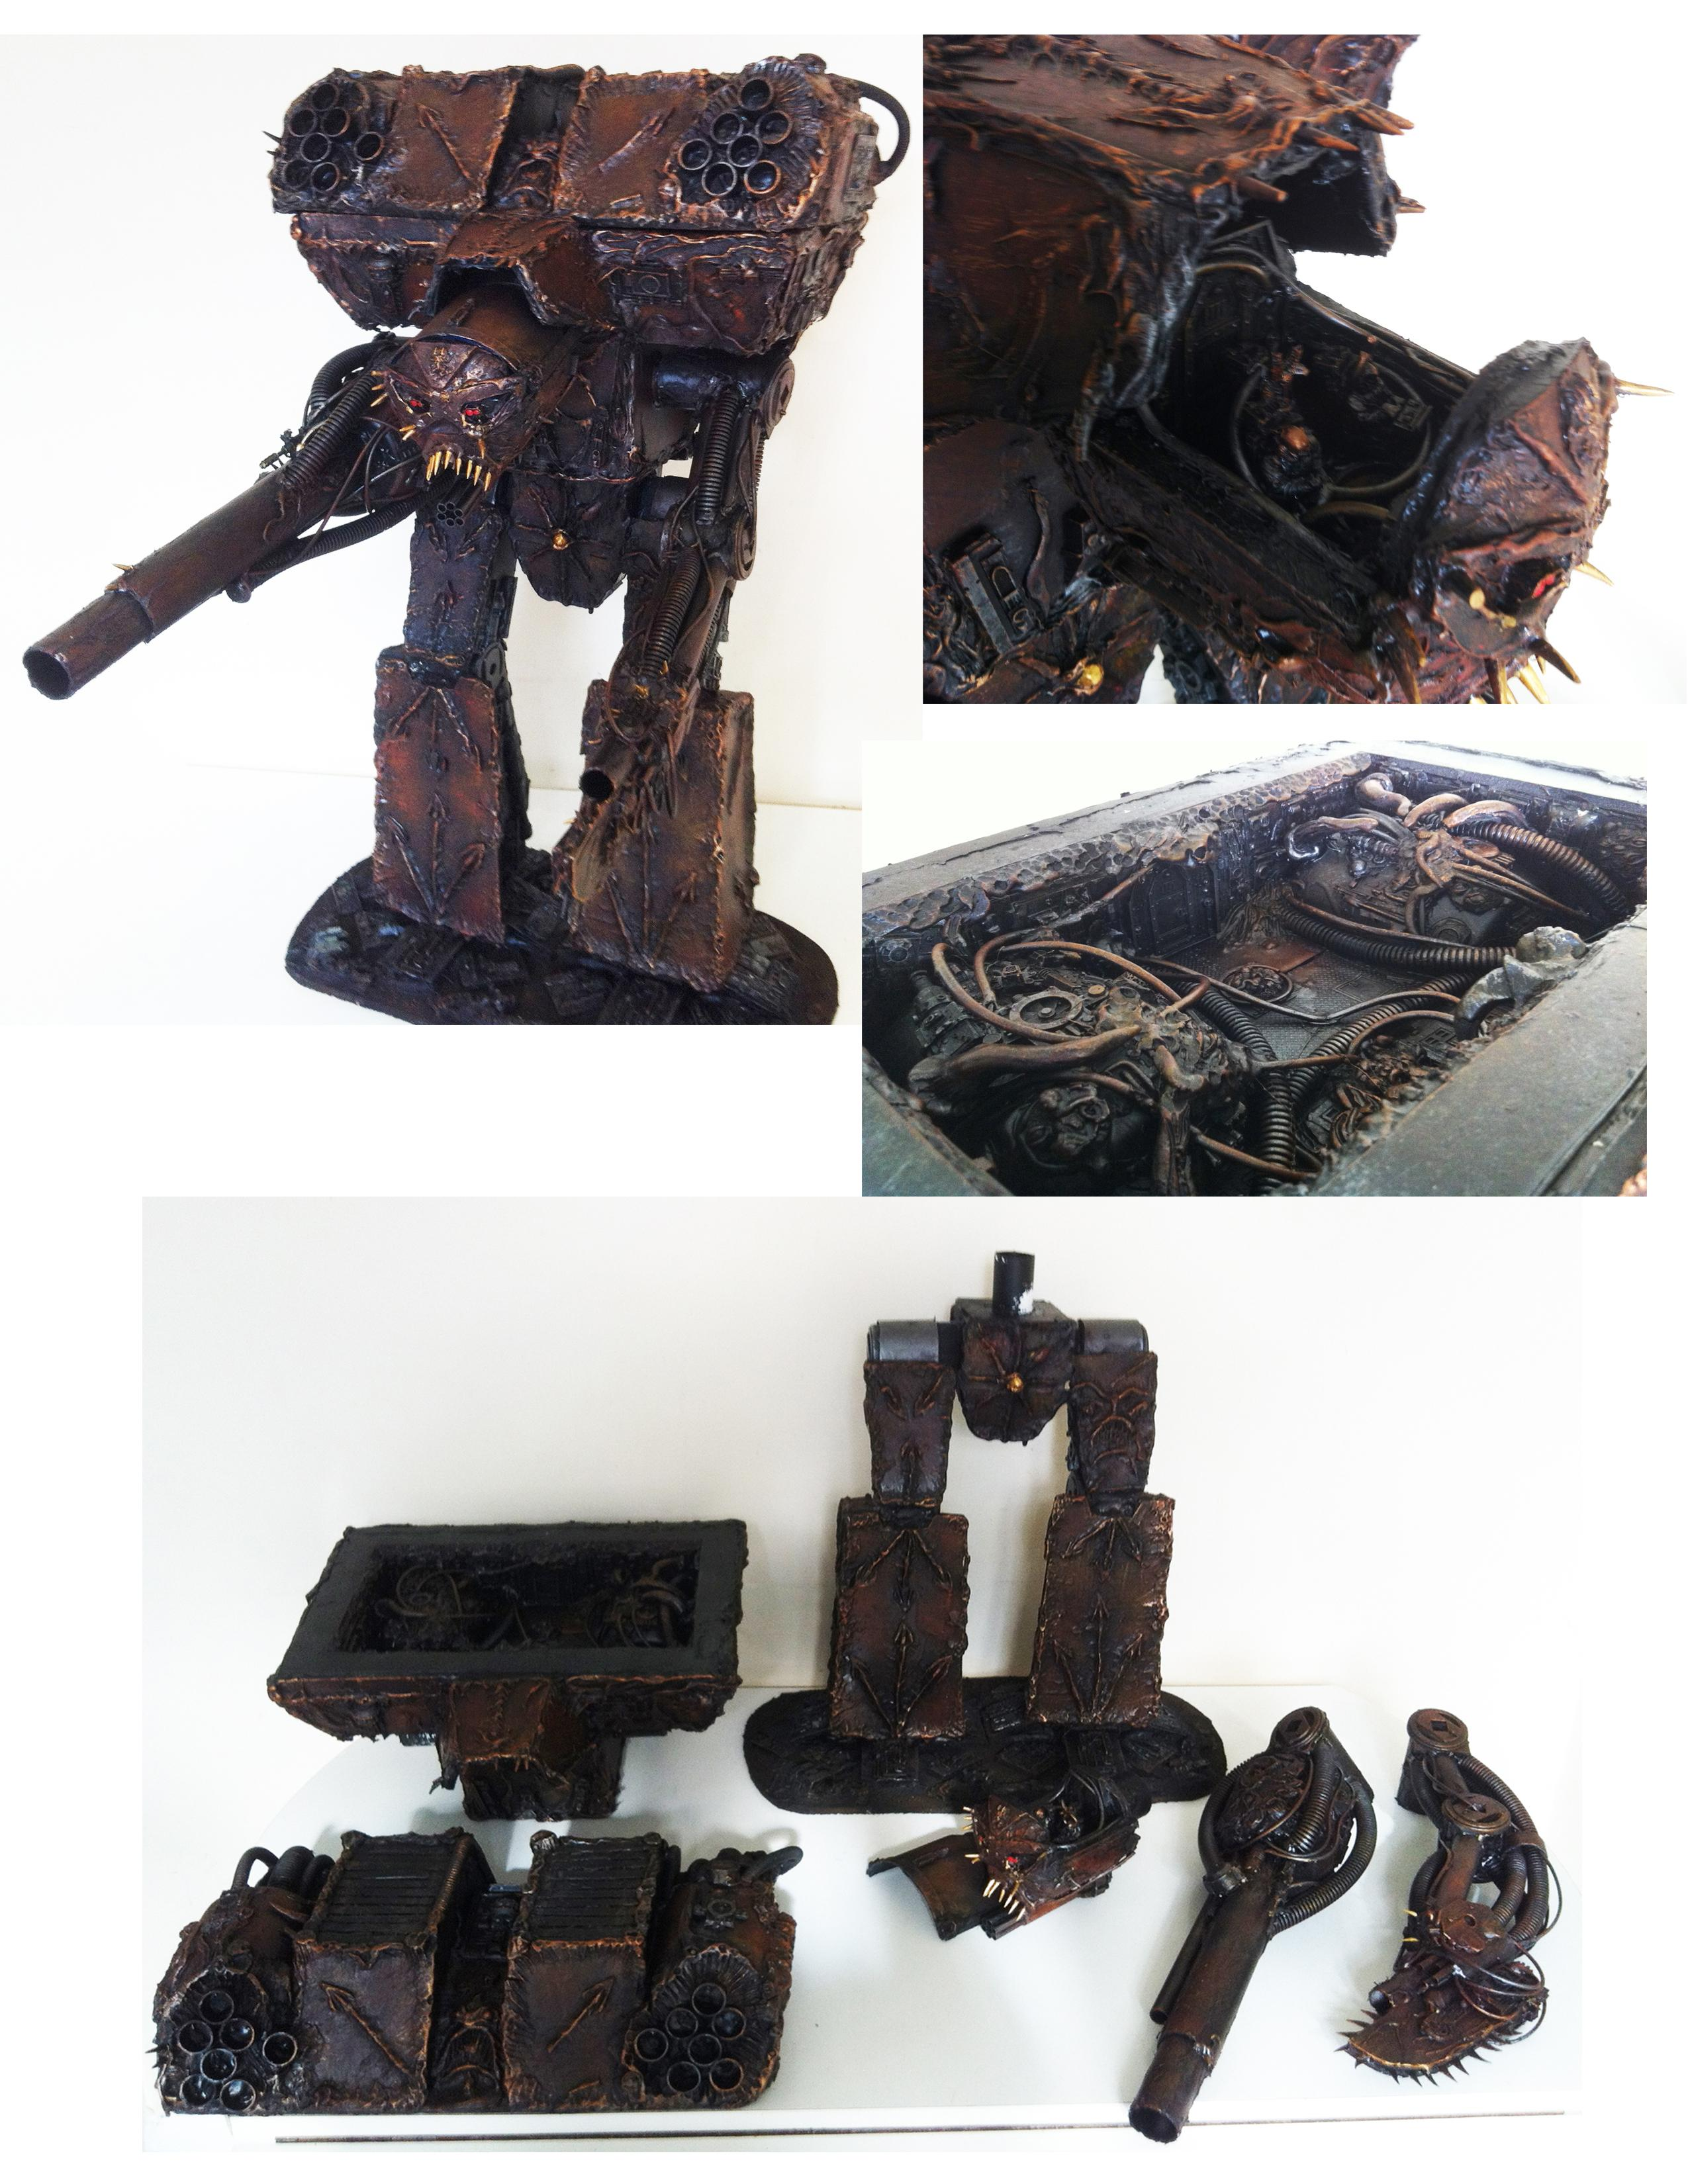 Commission, For Sale, Forge World, Interior, Massive, Scratch Build, Titan, Warhammer 40,000, Warlord